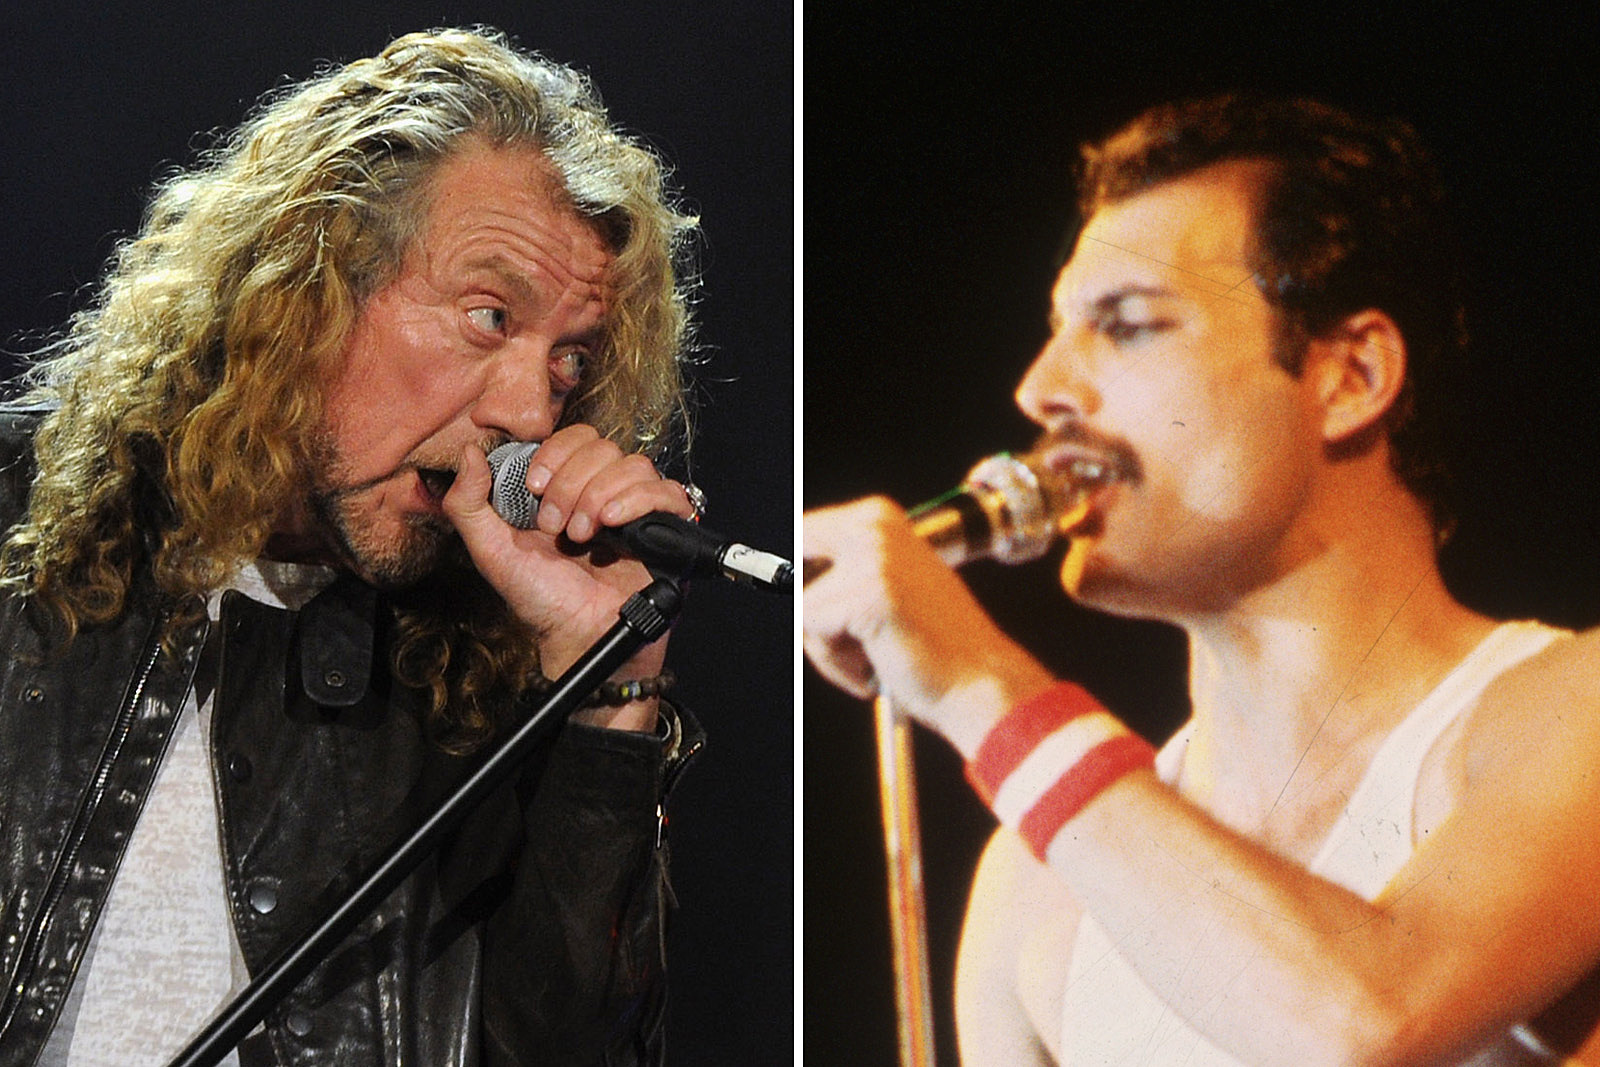 Most Requested Funeral Songs List Topped by Queen, Led Zeppelin